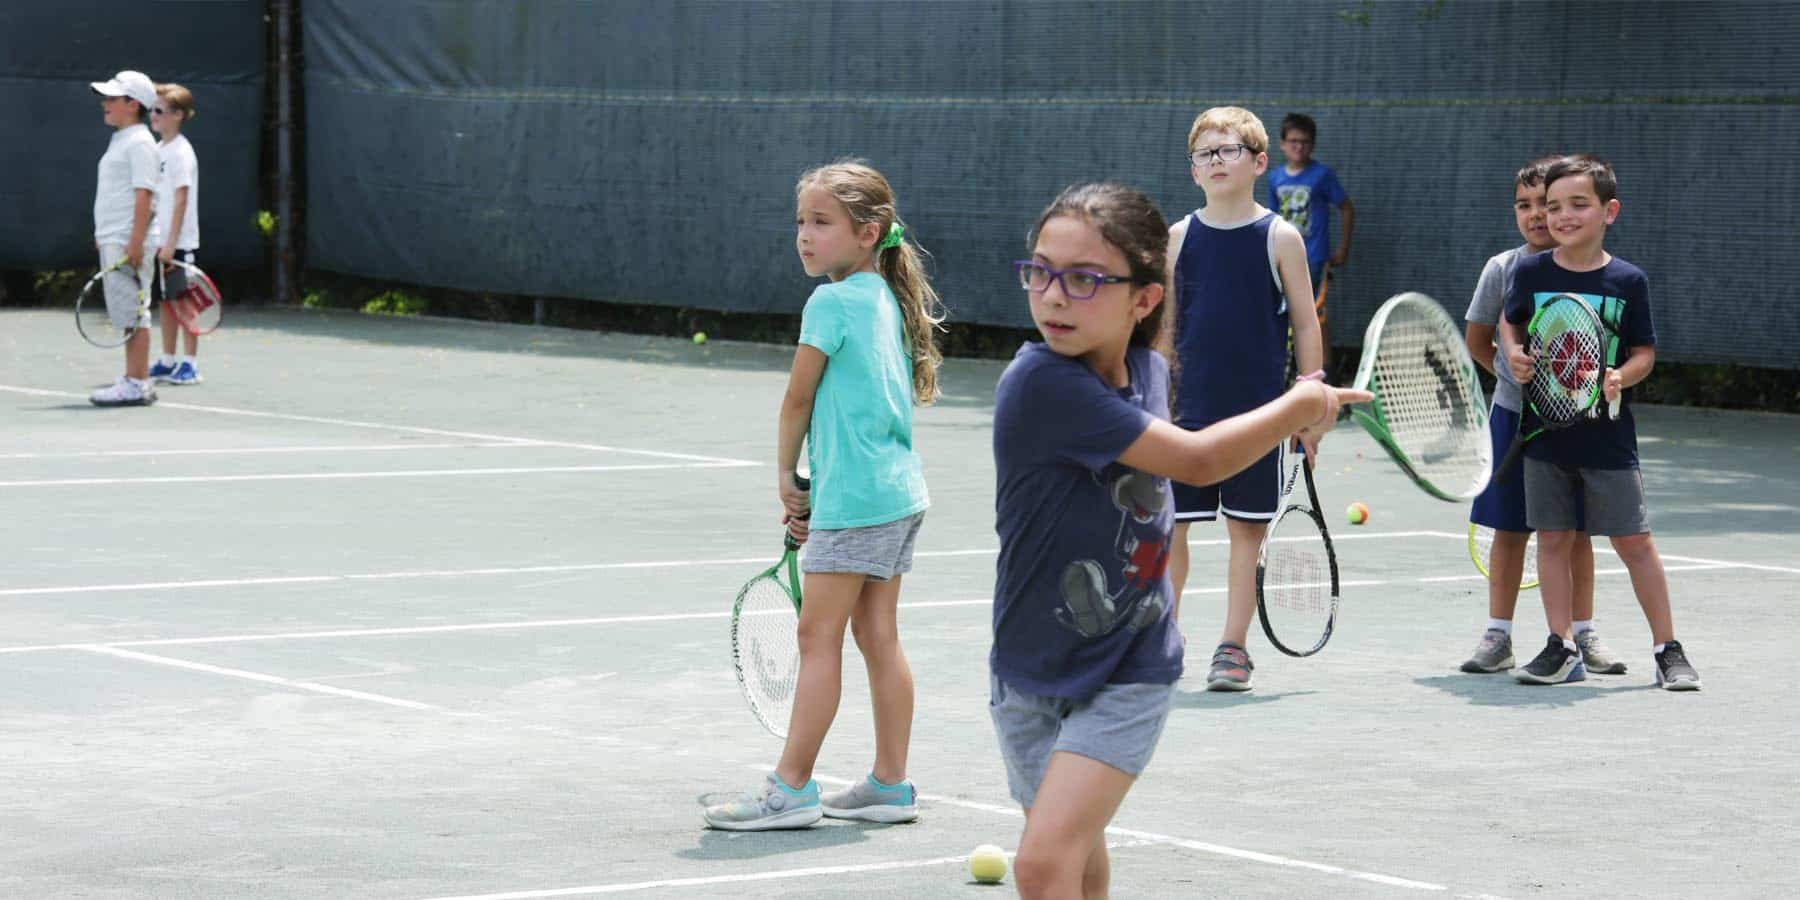 kids play tennis 6 to 9 years old New York tiger tennis academy